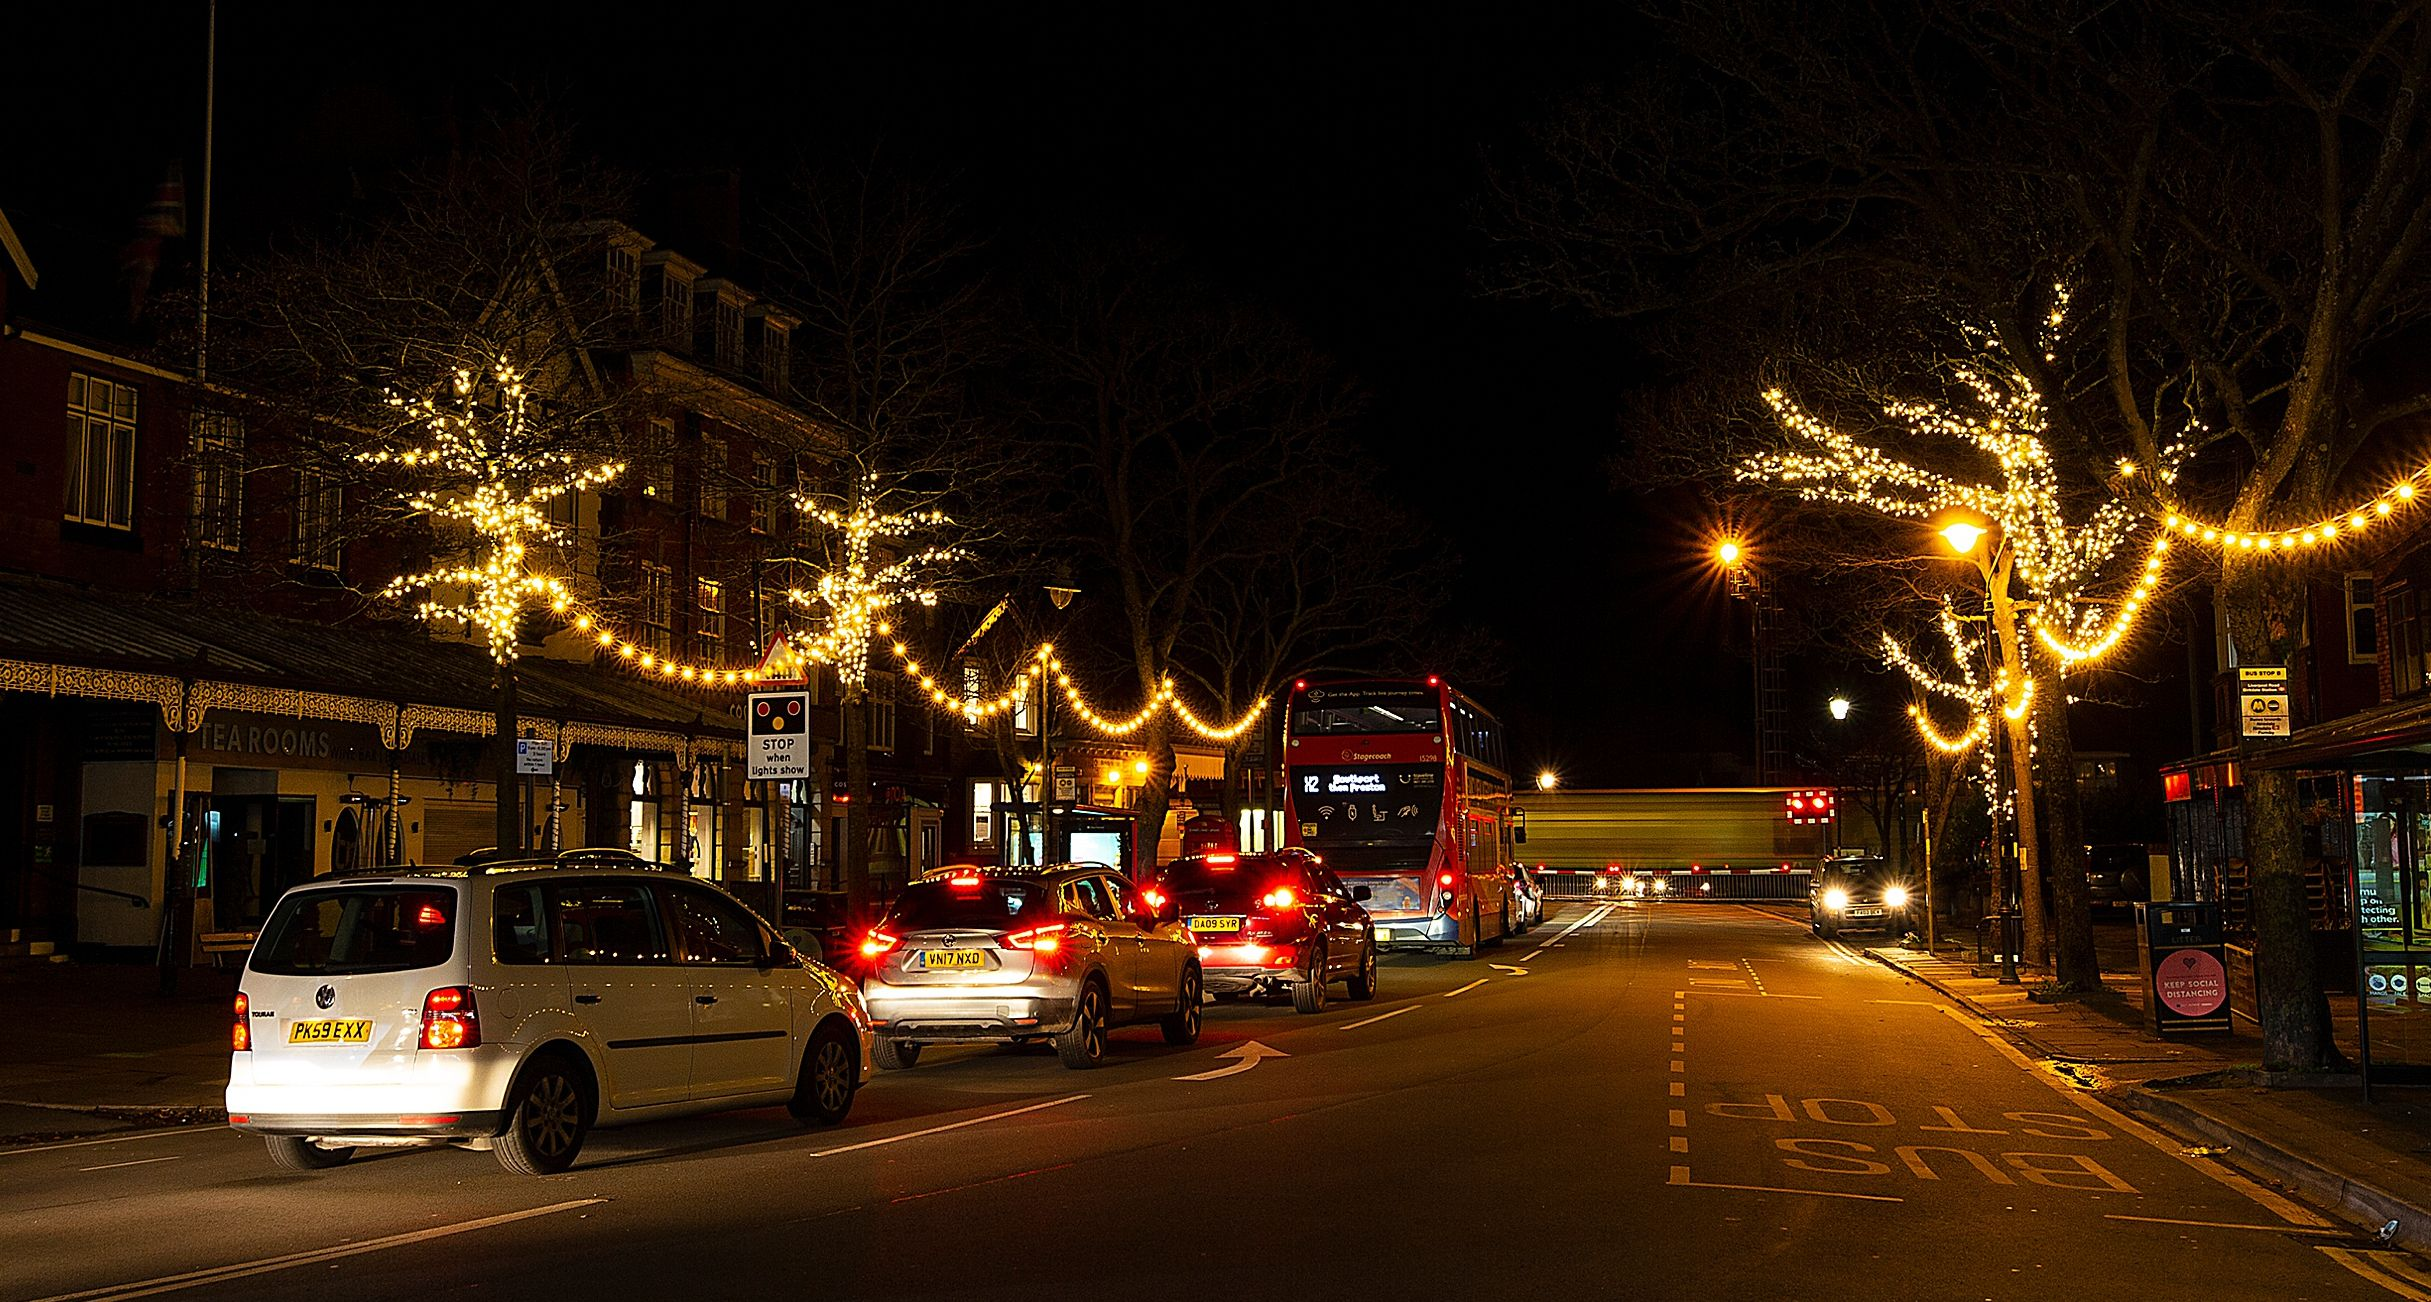 Christmas Lights in Birkdale Village in Southport. Photo by Angus Matheson of Wainwright & Matheson Photography